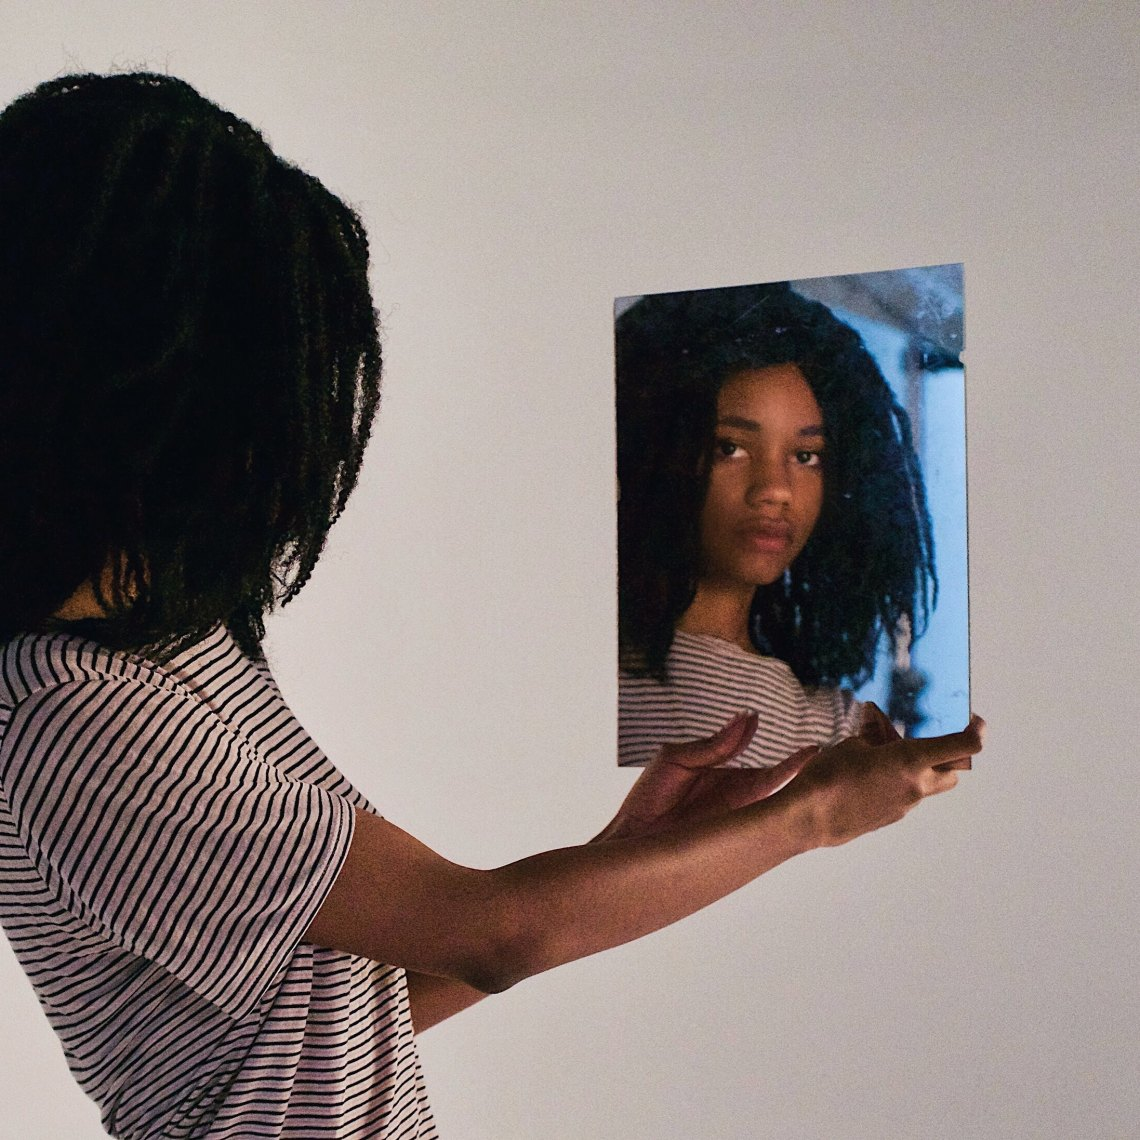 girl looking at self in mirror